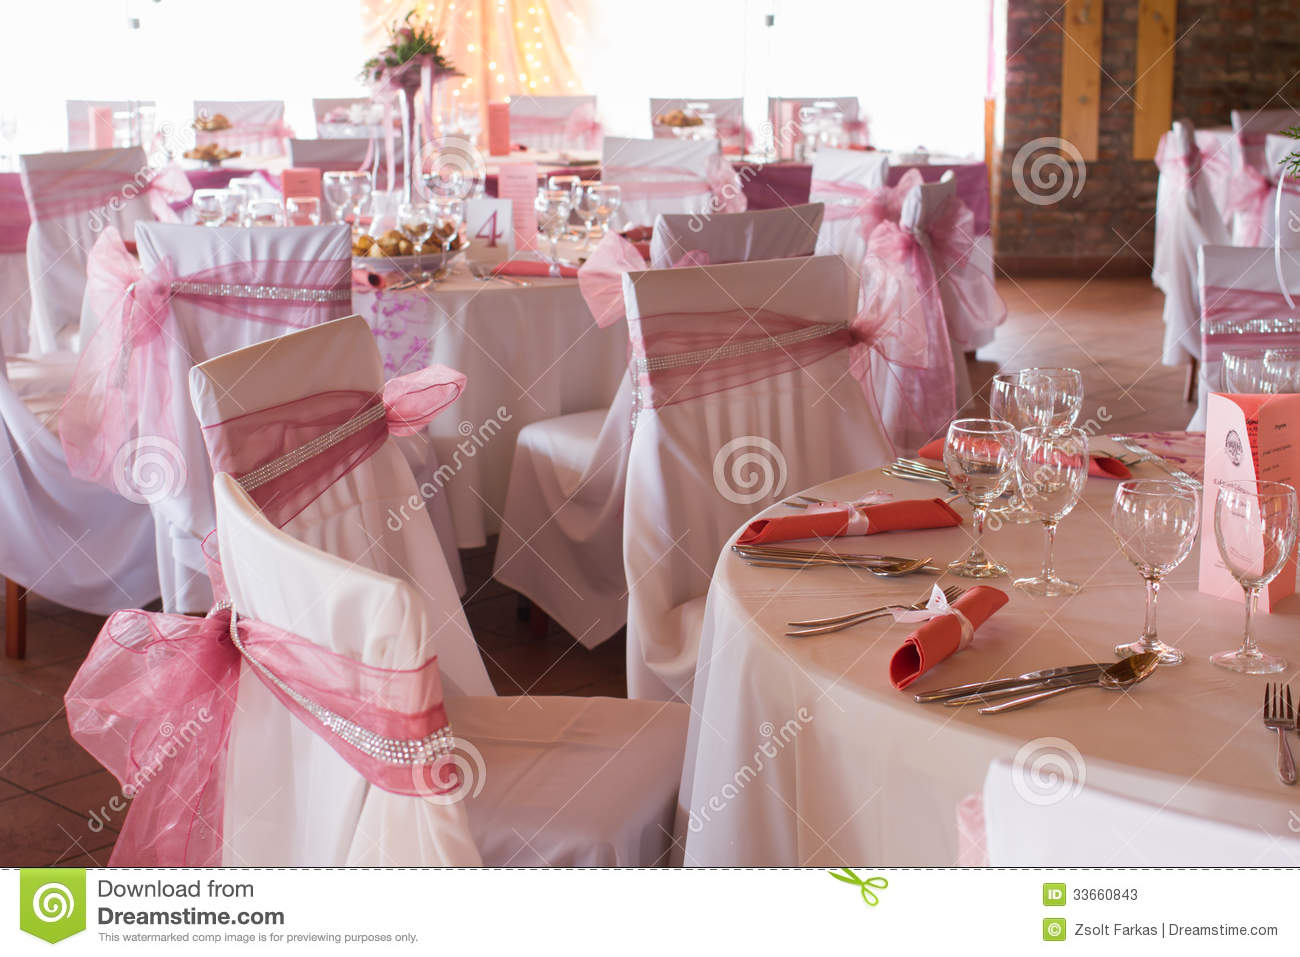 an image of tables setting at a luxury wedding hall stock image image of fashion class 33660843. Black Bedroom Furniture Sets. Home Design Ideas